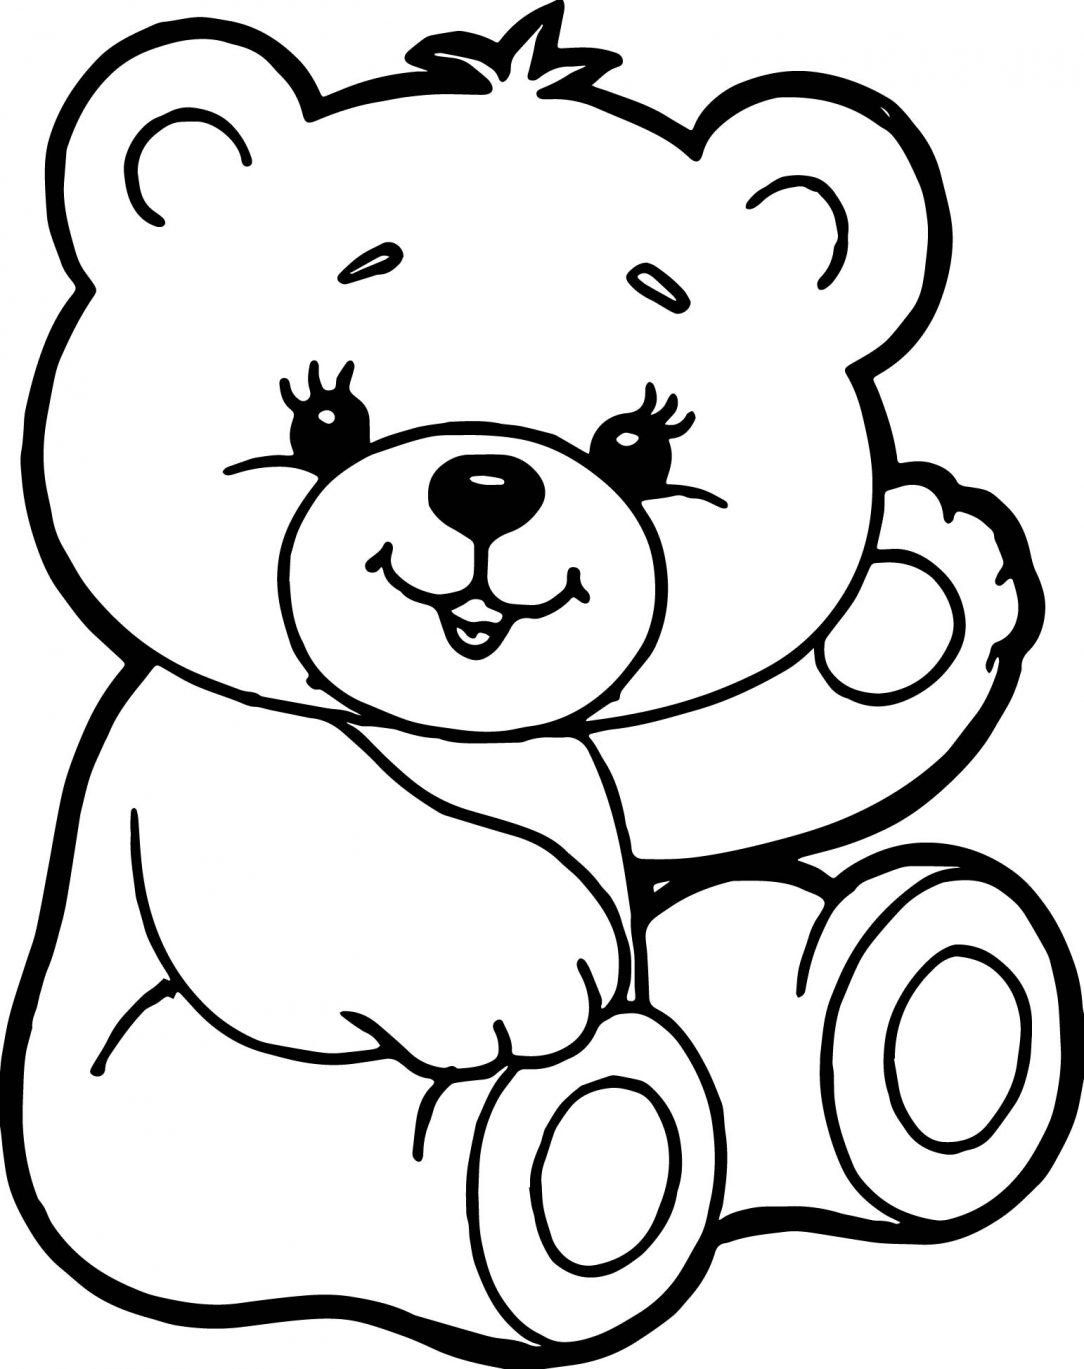 Teddy Bear Coloring Pages Best Of Color Sheet Cute Teddy Bear Brown Care Polar Free Gummy In 2020 Bear Coloring Pages Teddy Bear Coloring Pages Cute Coloring Pages